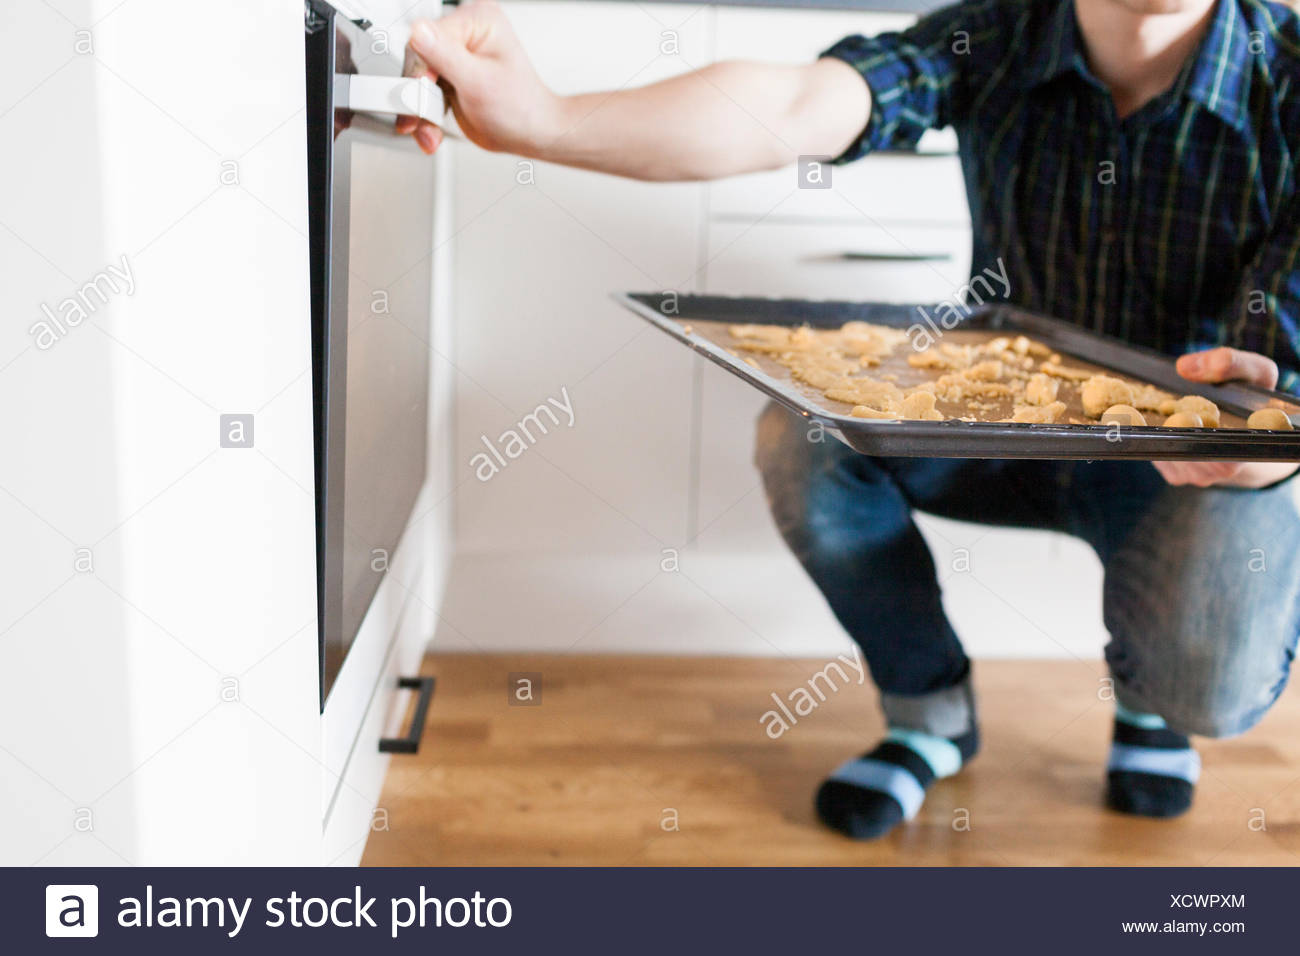 Low section of man putting baking tray in oven - Stock Image